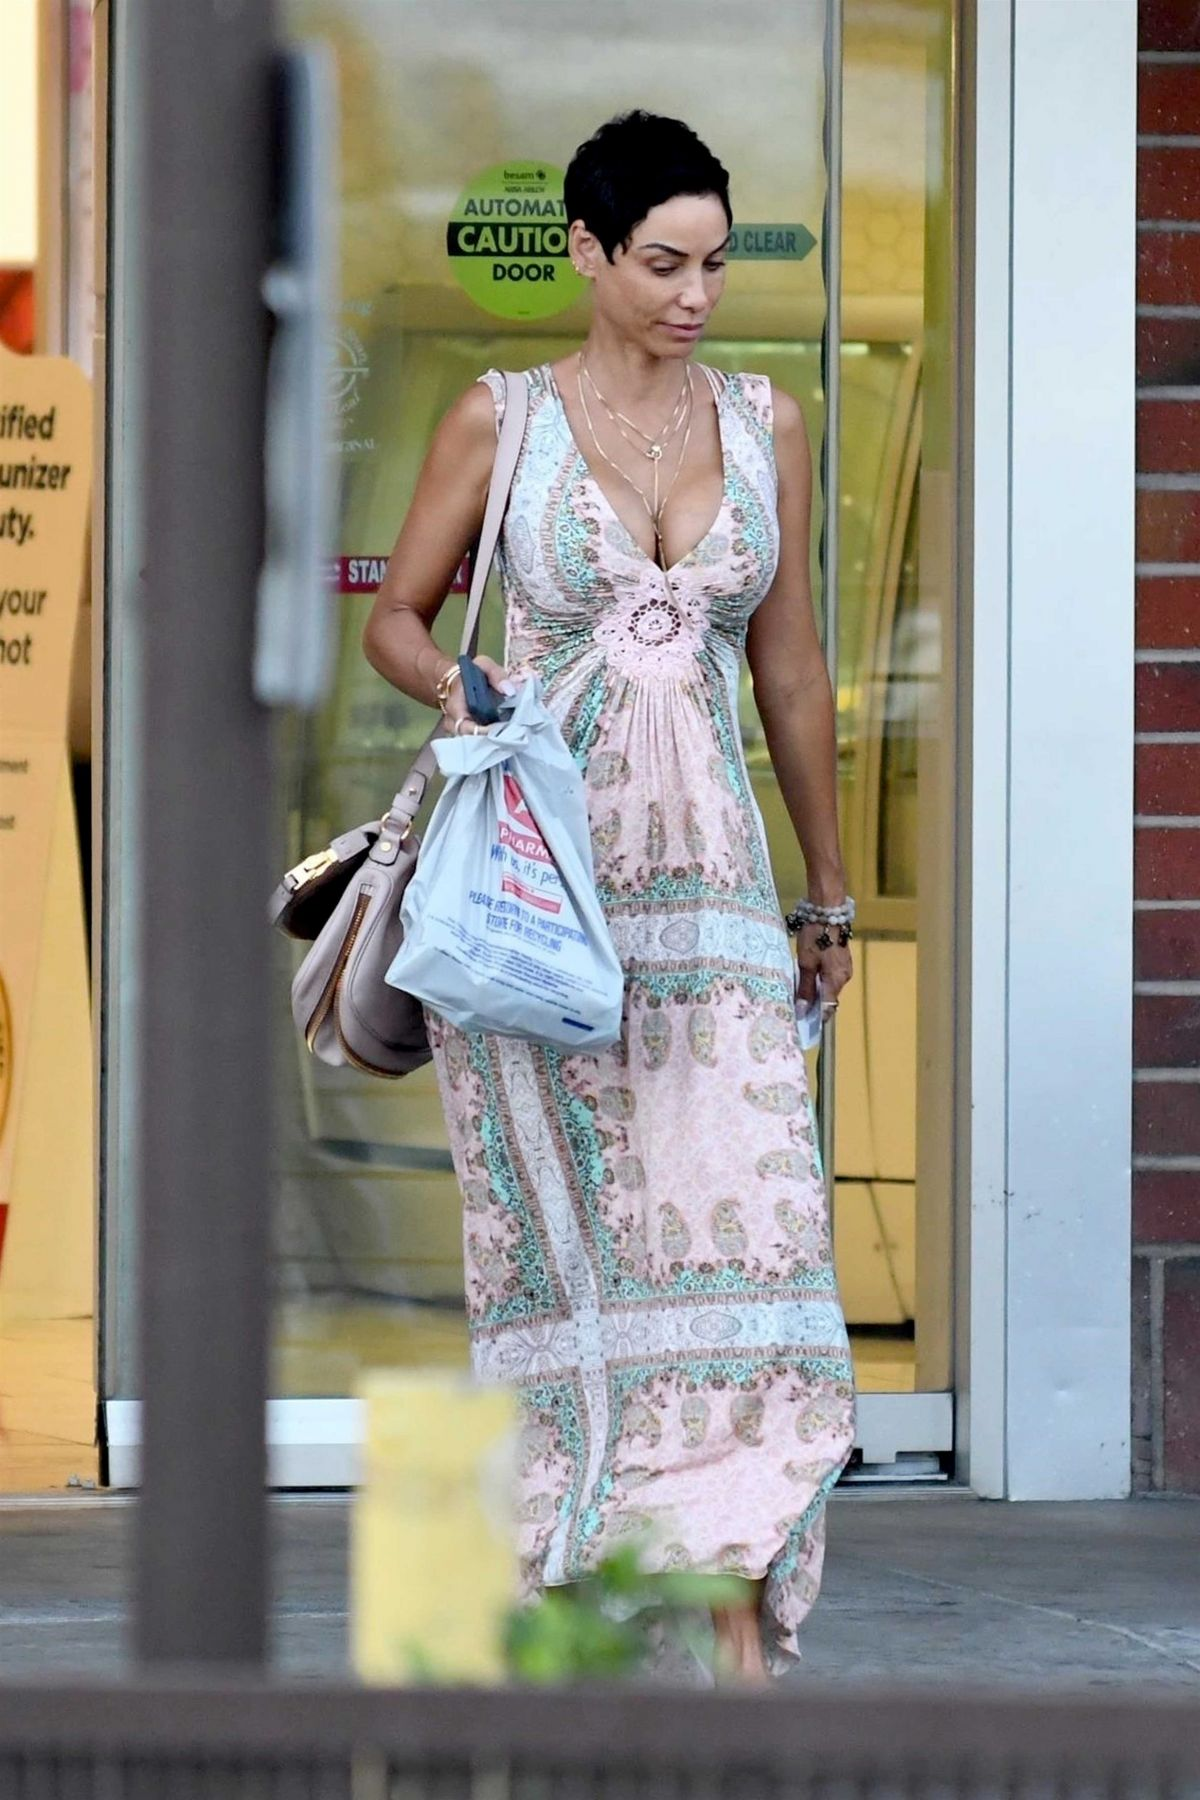 Nicole Murphy Was spotted showing plenty of cleavage in a floral print dress during a shopping trip to Rite Aid Pharmacy in Los Angeles